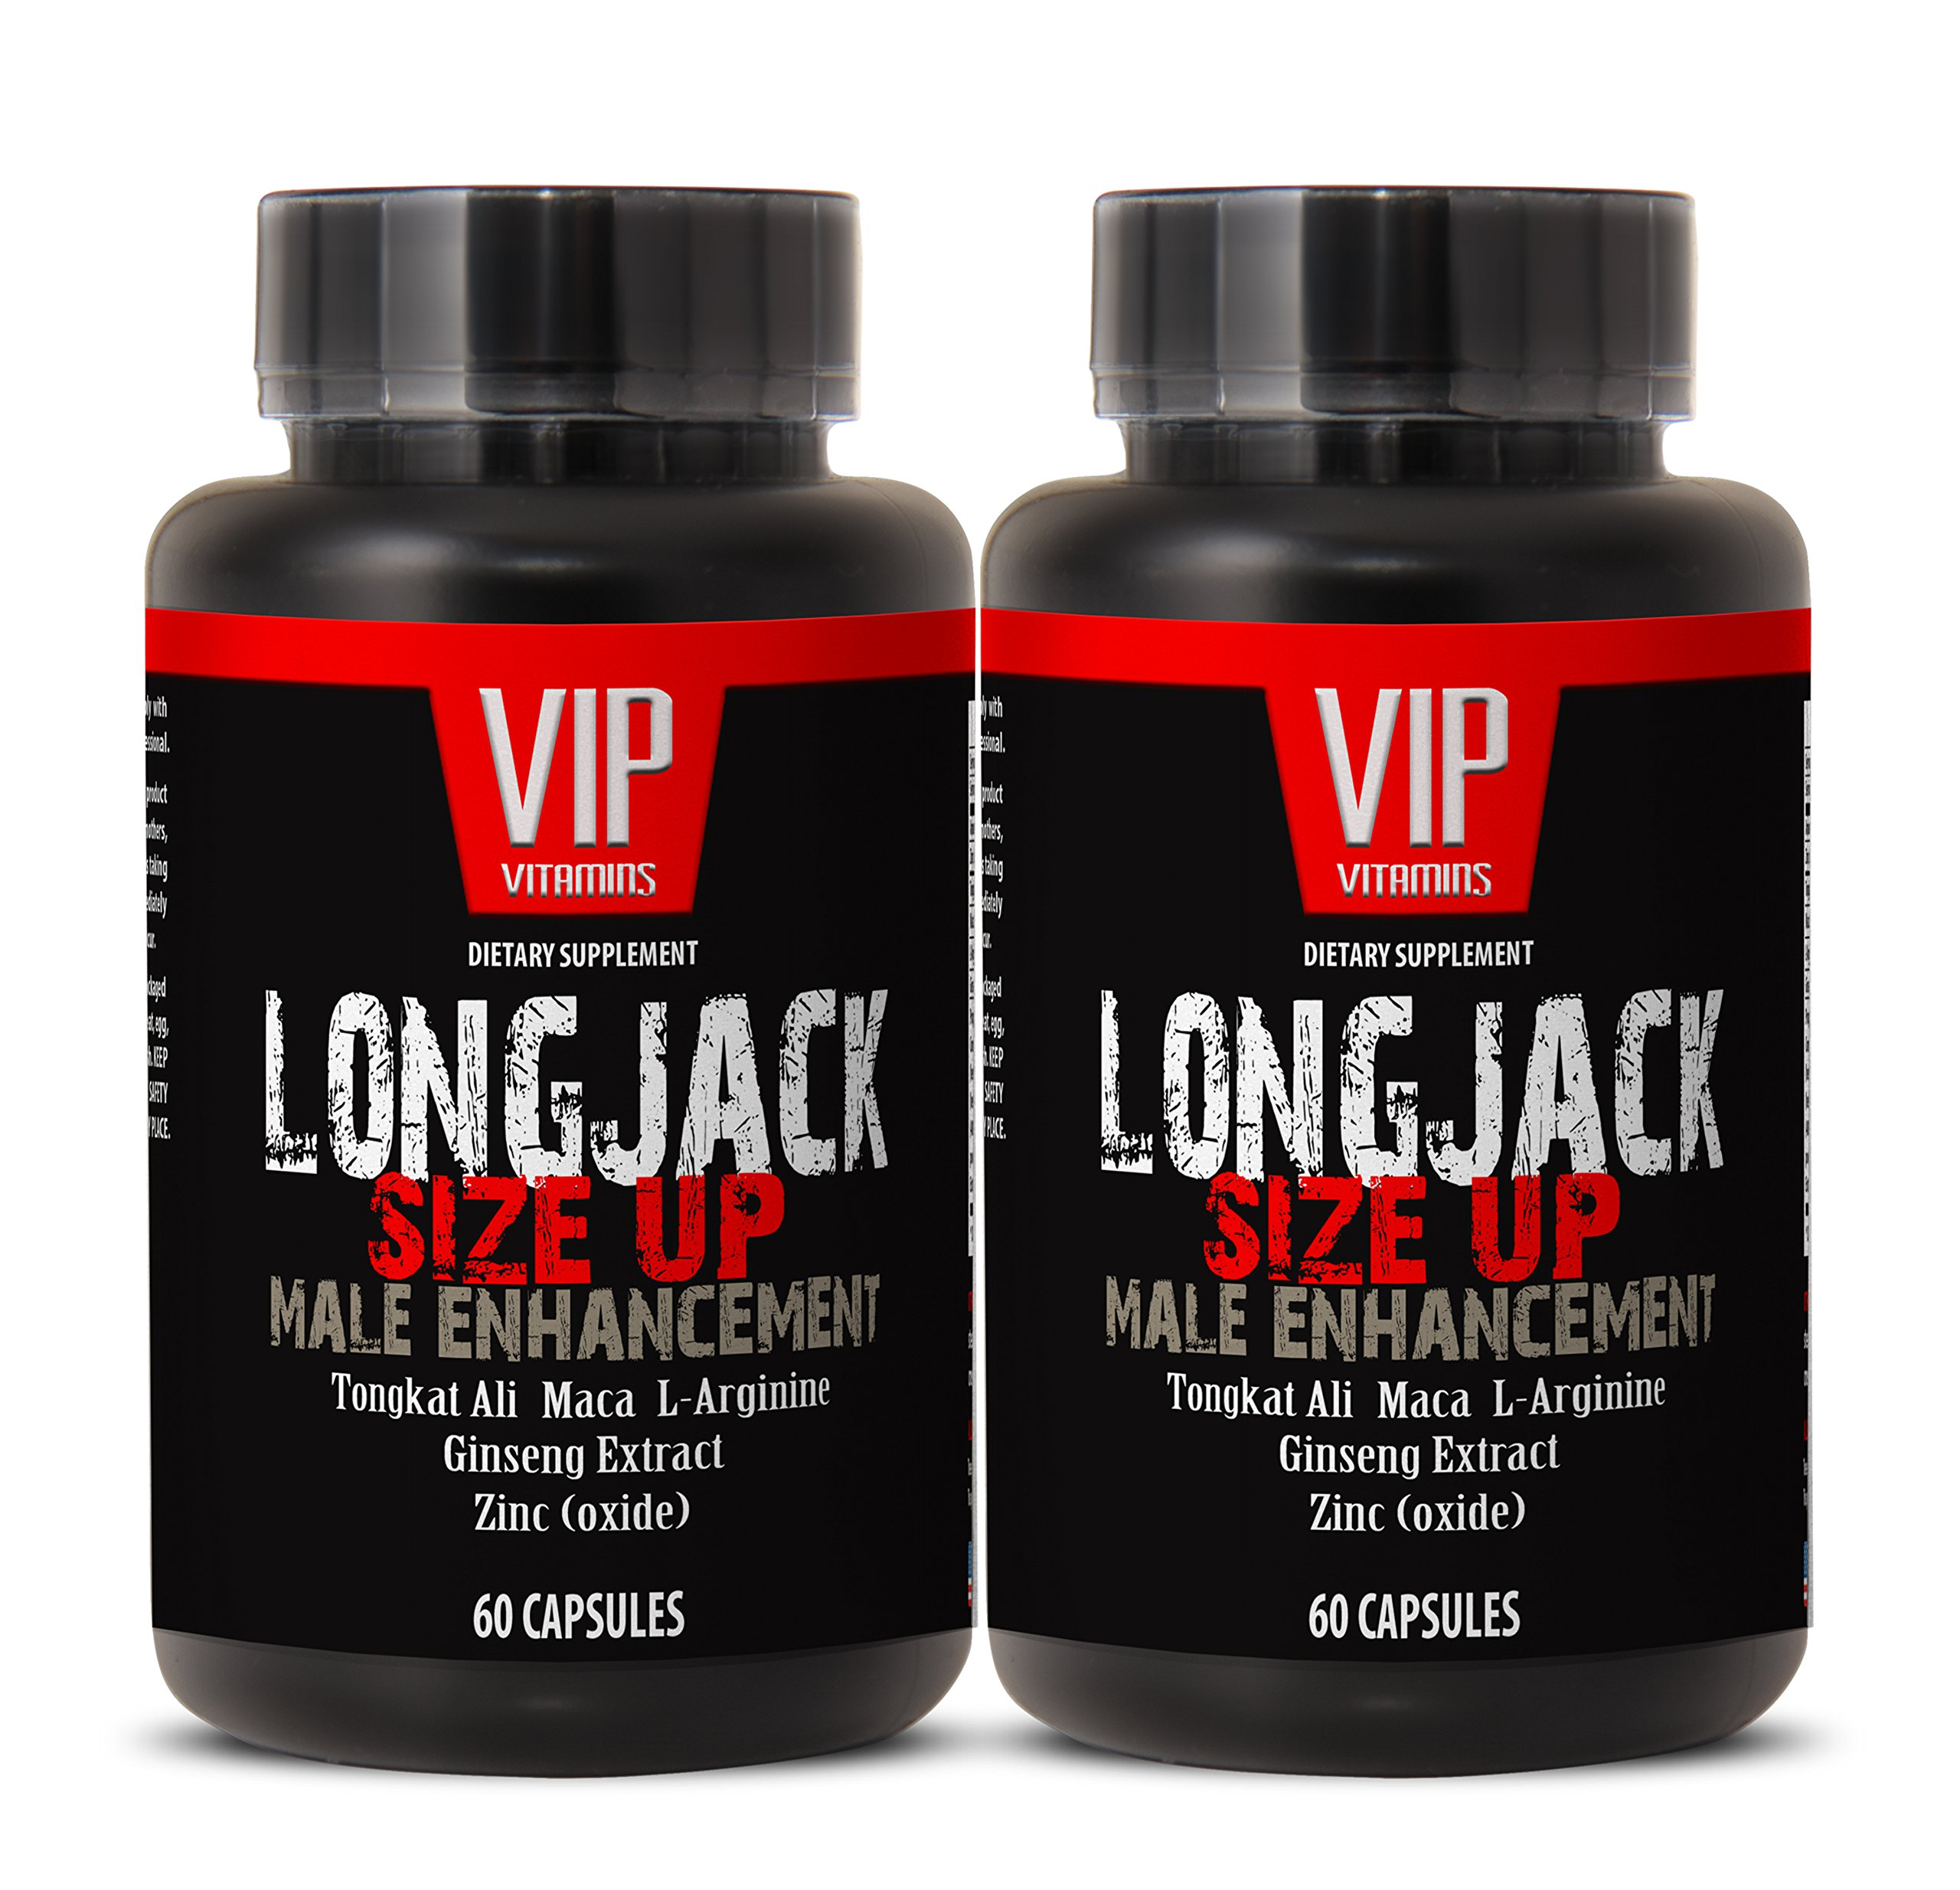 Male enhancing pills increase size and length - LONGJACK SIZE UP (MALE ENHANCEMENT FORMULA) - Maca vitamins for men - 2 Bottles 120 Capsules by VIP Supplements (Image #1)